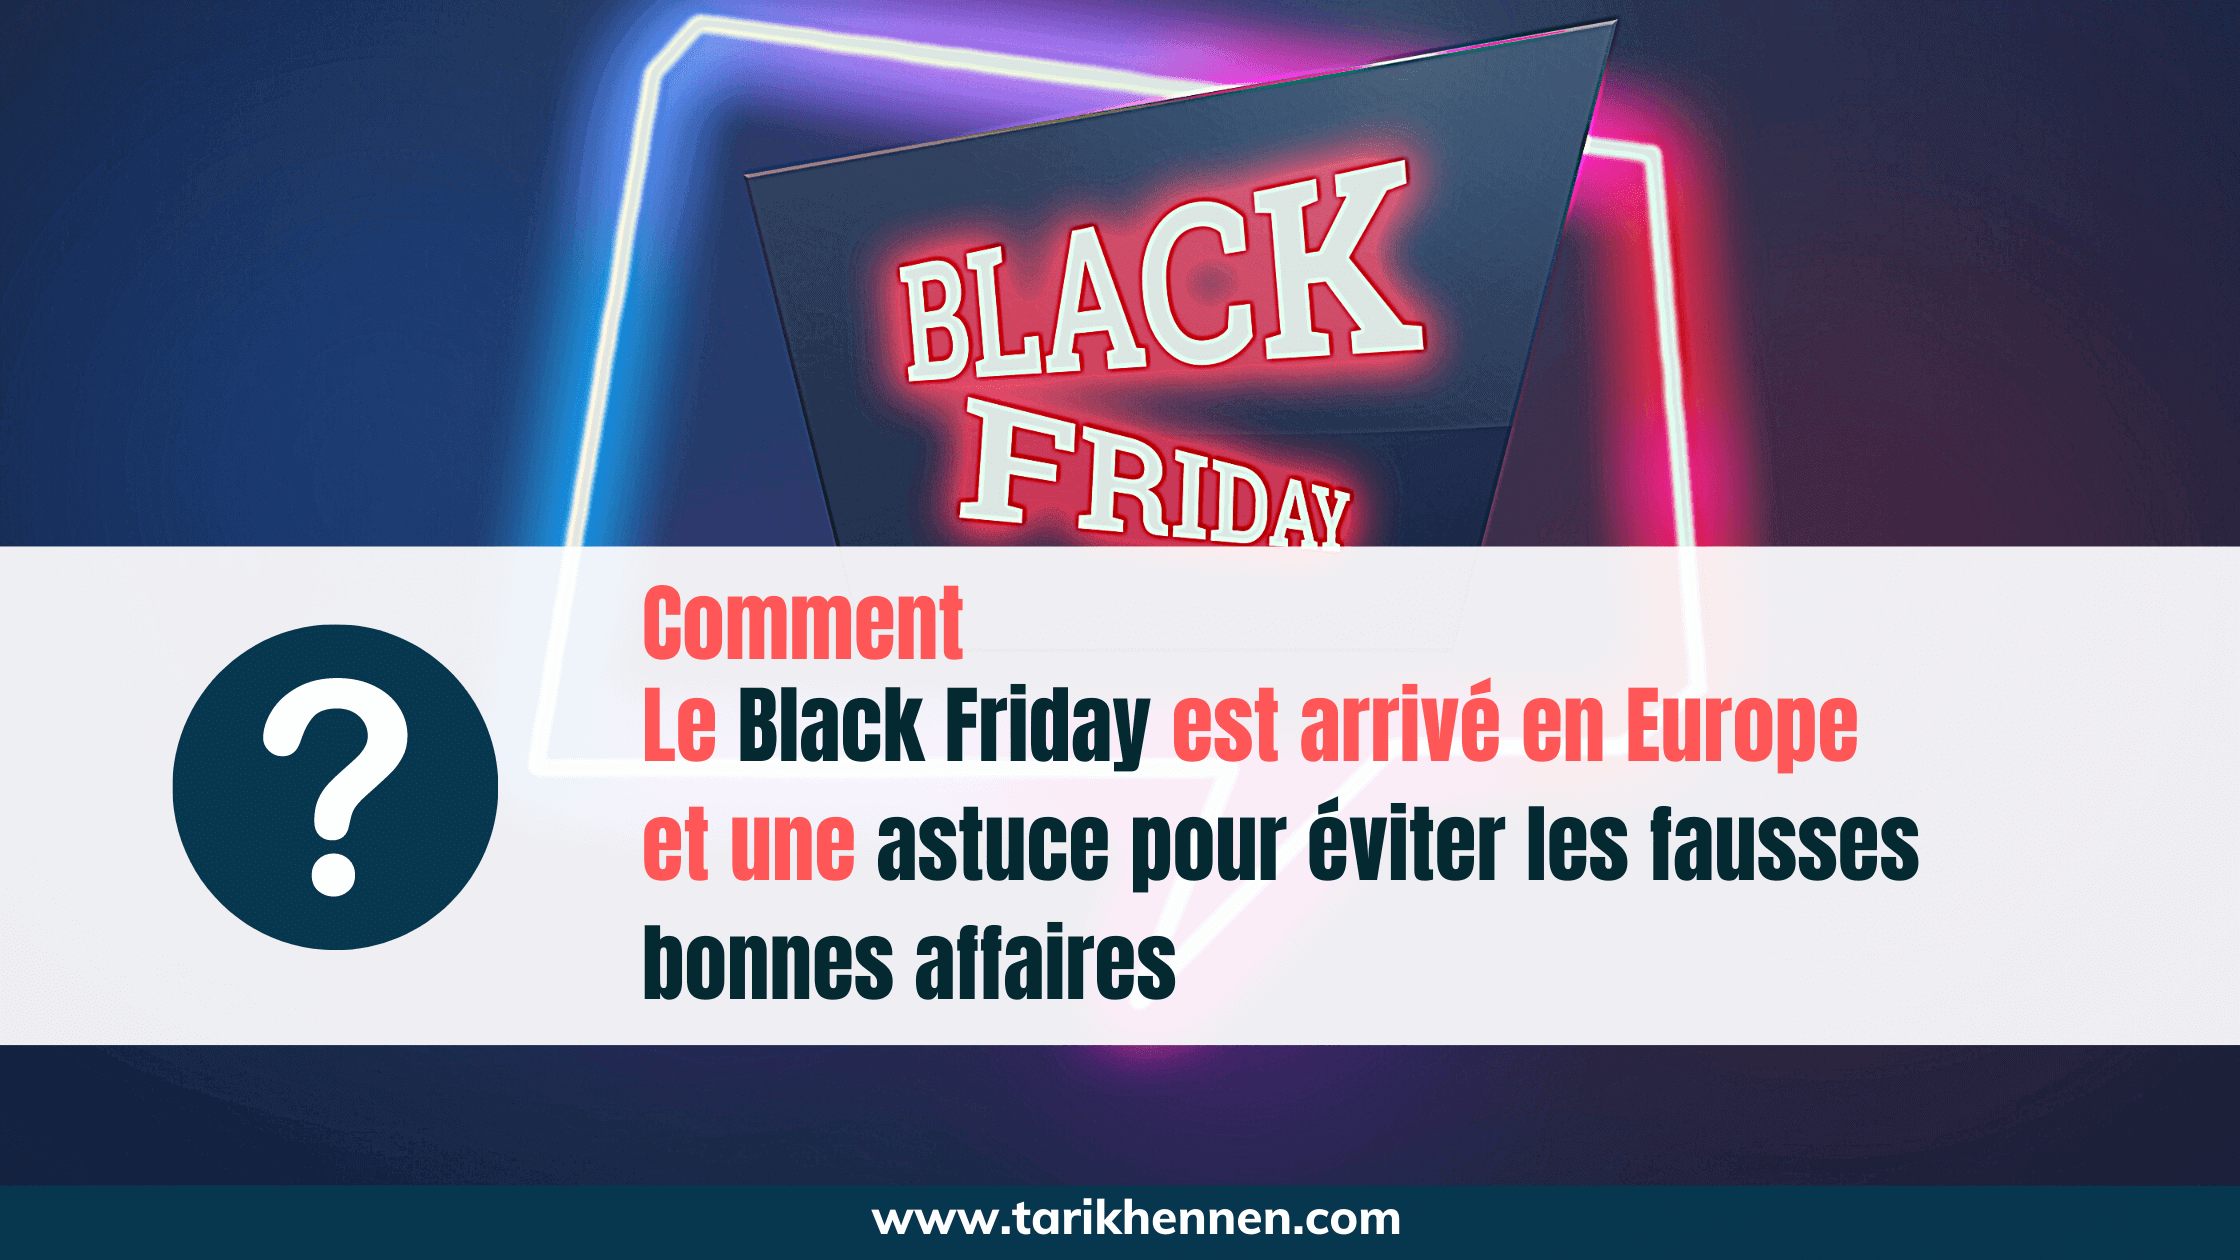 Comment le Black Friday est arrivé en Europe